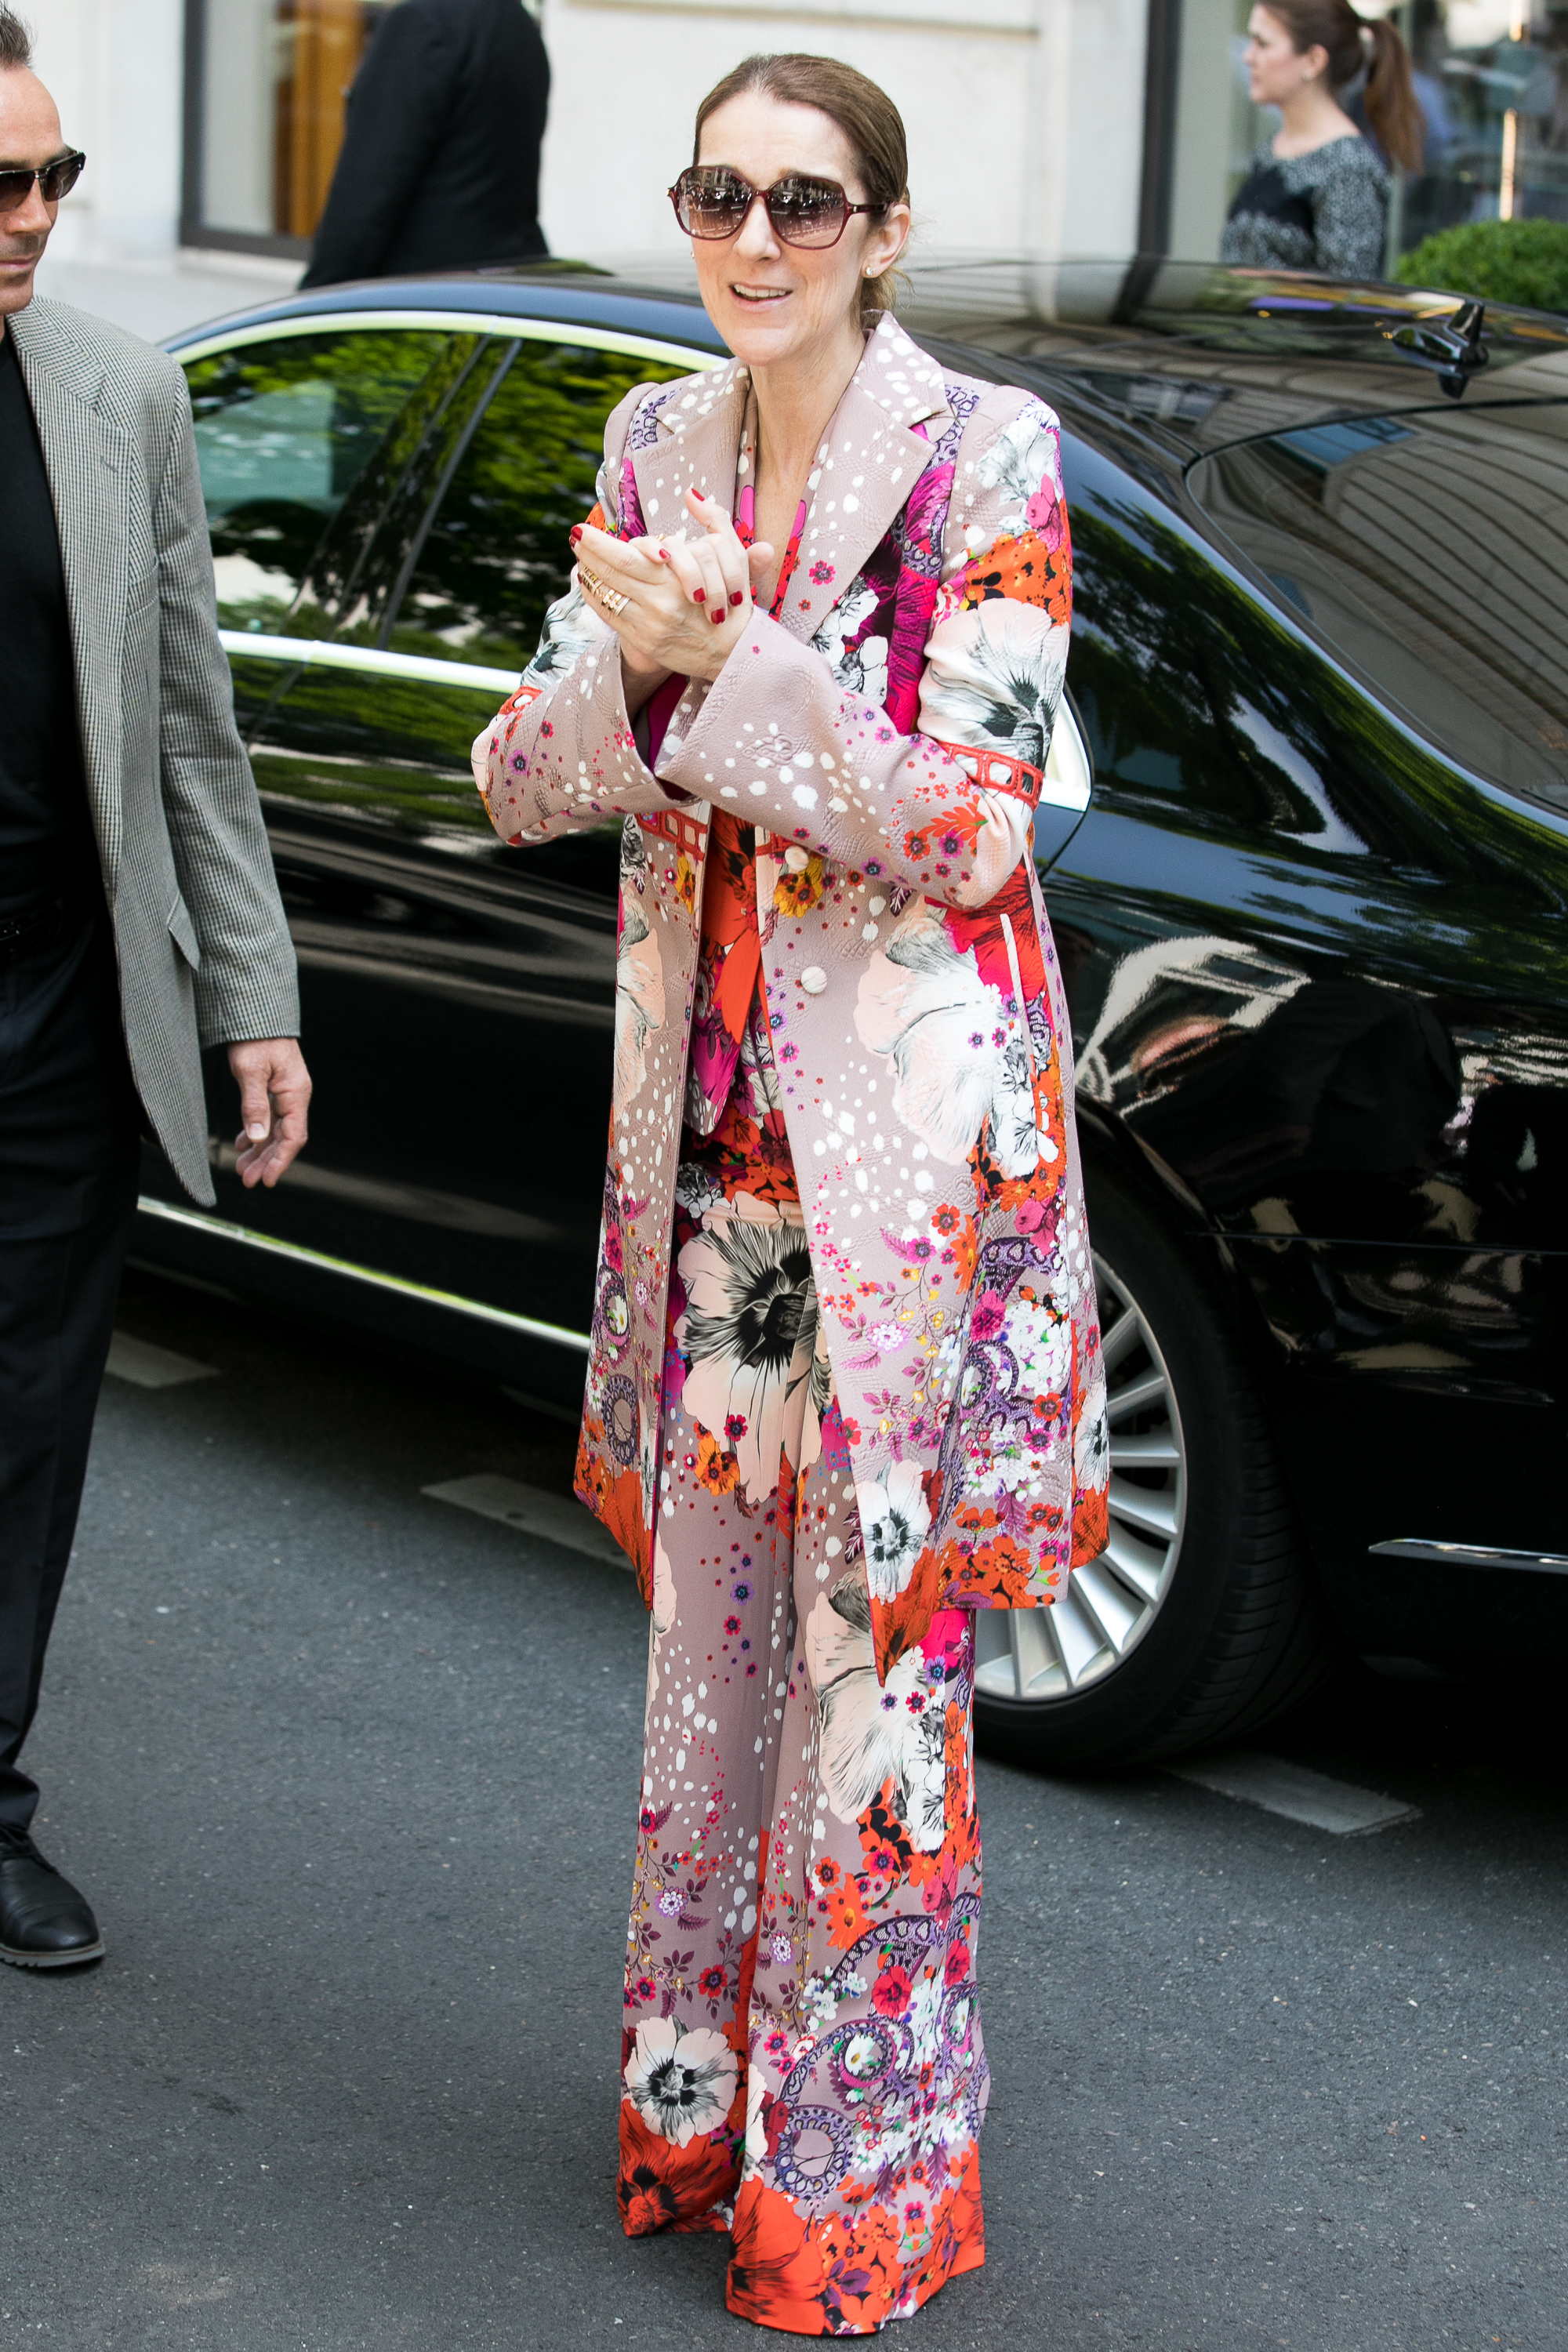 """<p>It has taken three decades but Celine Dion, 49, is now officially a fashion A-Lister.</p> <p>The trim Canadian singer has had more red carpet hits than misses in the past (including that back to front Oscars outfit in 1999) but since the tragic death of her husband Celine has blossomed into a high fashion favourite.</p> <p>Yesterday she stepped out in Paris wearing a three piece Roberto Cavalli suit which attracted almost as much attention as the news of her upcoming lifestyle brand with Nordstrom.</p> <p>""""I'm excited at this opportunity to launch my collection withNordstrom. They're a wonderful company with great stores, and I'm proud to be associated with them,"""" Celine said in <a href=""""http://wwd.com/fashion-news/fashion-scoops/celine-dion-lifestyle-collection-debut-nordstrom-10913421/"""" target=""""_blank"""">WWD</a>. """"My collection is all about affordable luxury, and we've created beautiful designs with excellent quality and I can't wait for everyone to discover all of this at Nordstrom.""""</p> <p>While we wait for the accessories to land, let's take a look at Celine Dion's evolution from daggy diva to Balmain babe.</p> <p></p> <p>Singer Celine Dion is seen on June 14, 2017 in Paris, France.</p>"""